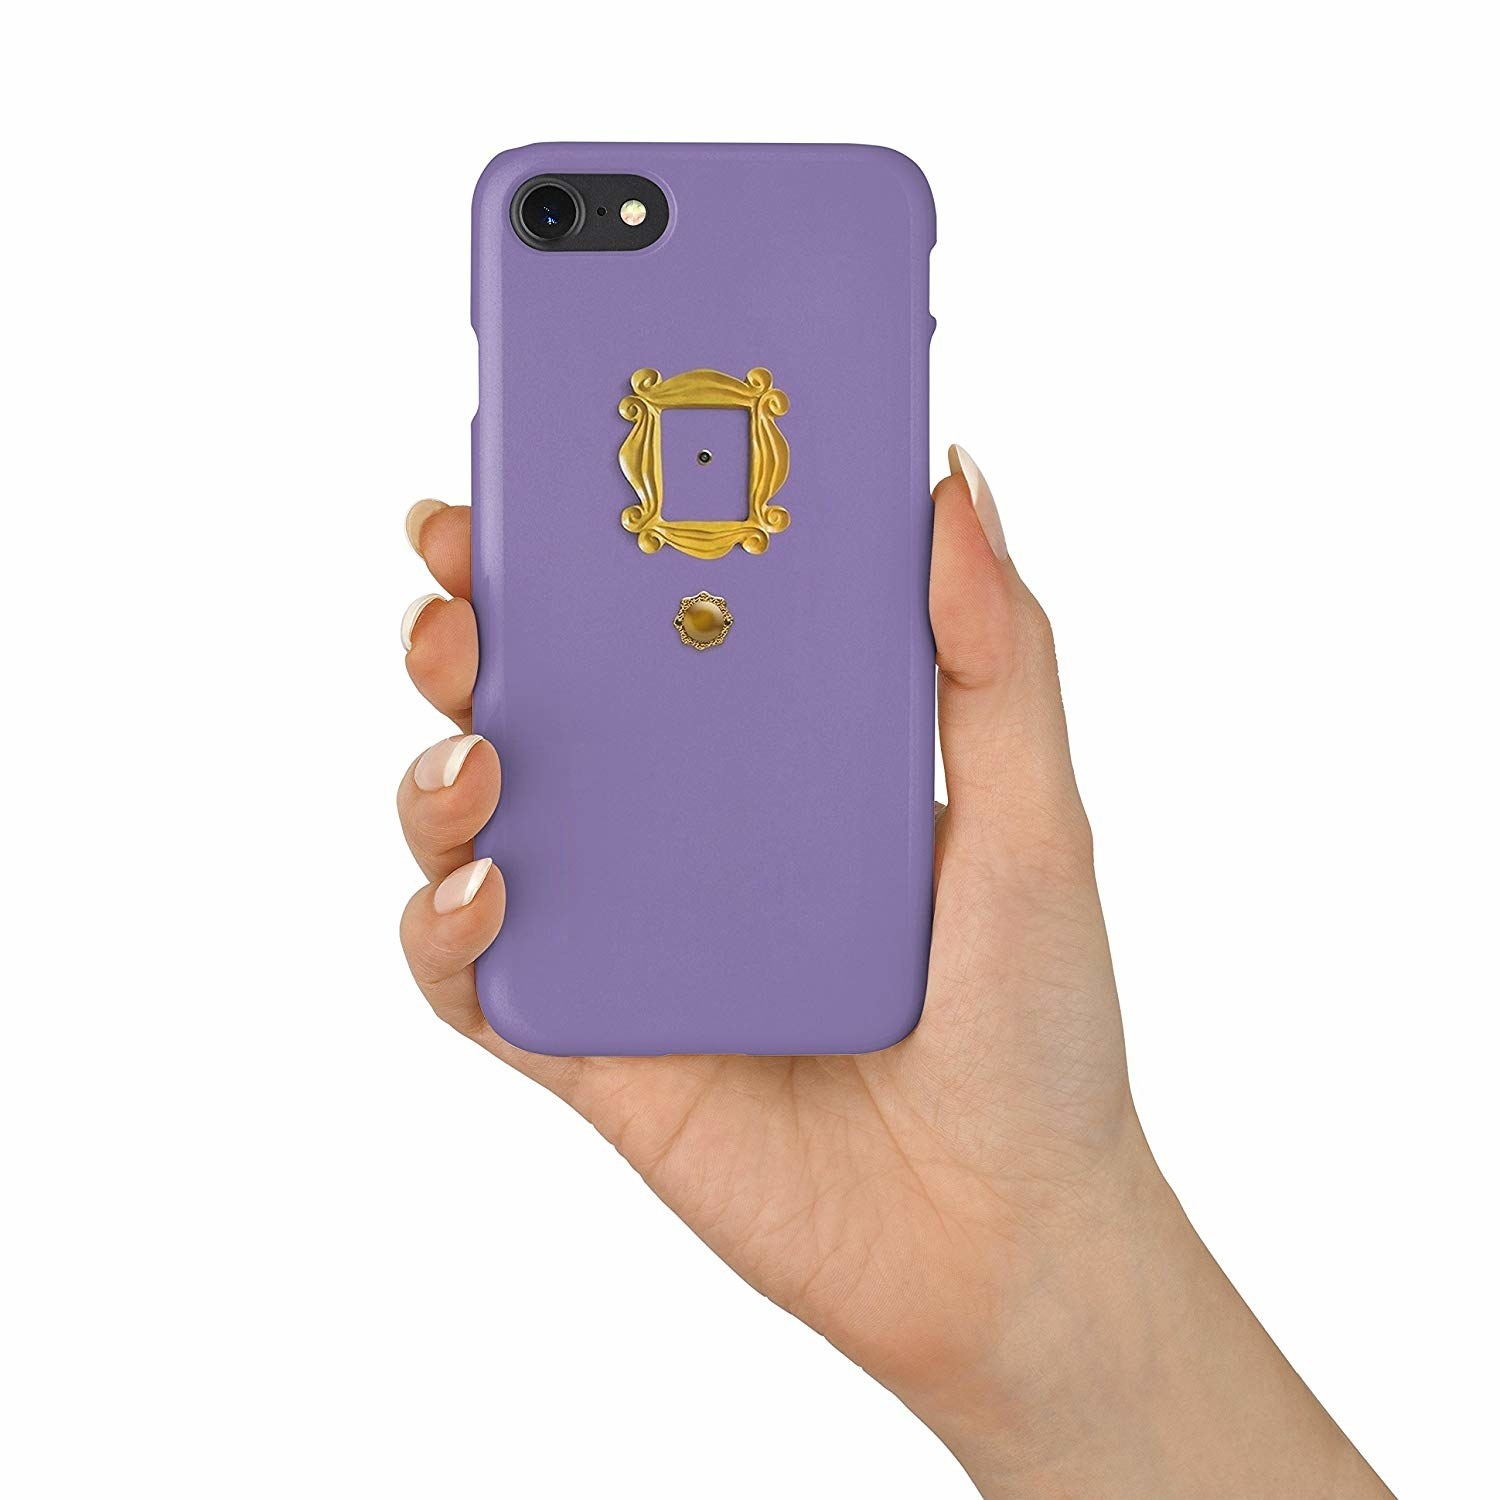 a purple phone case that looks like monica's door